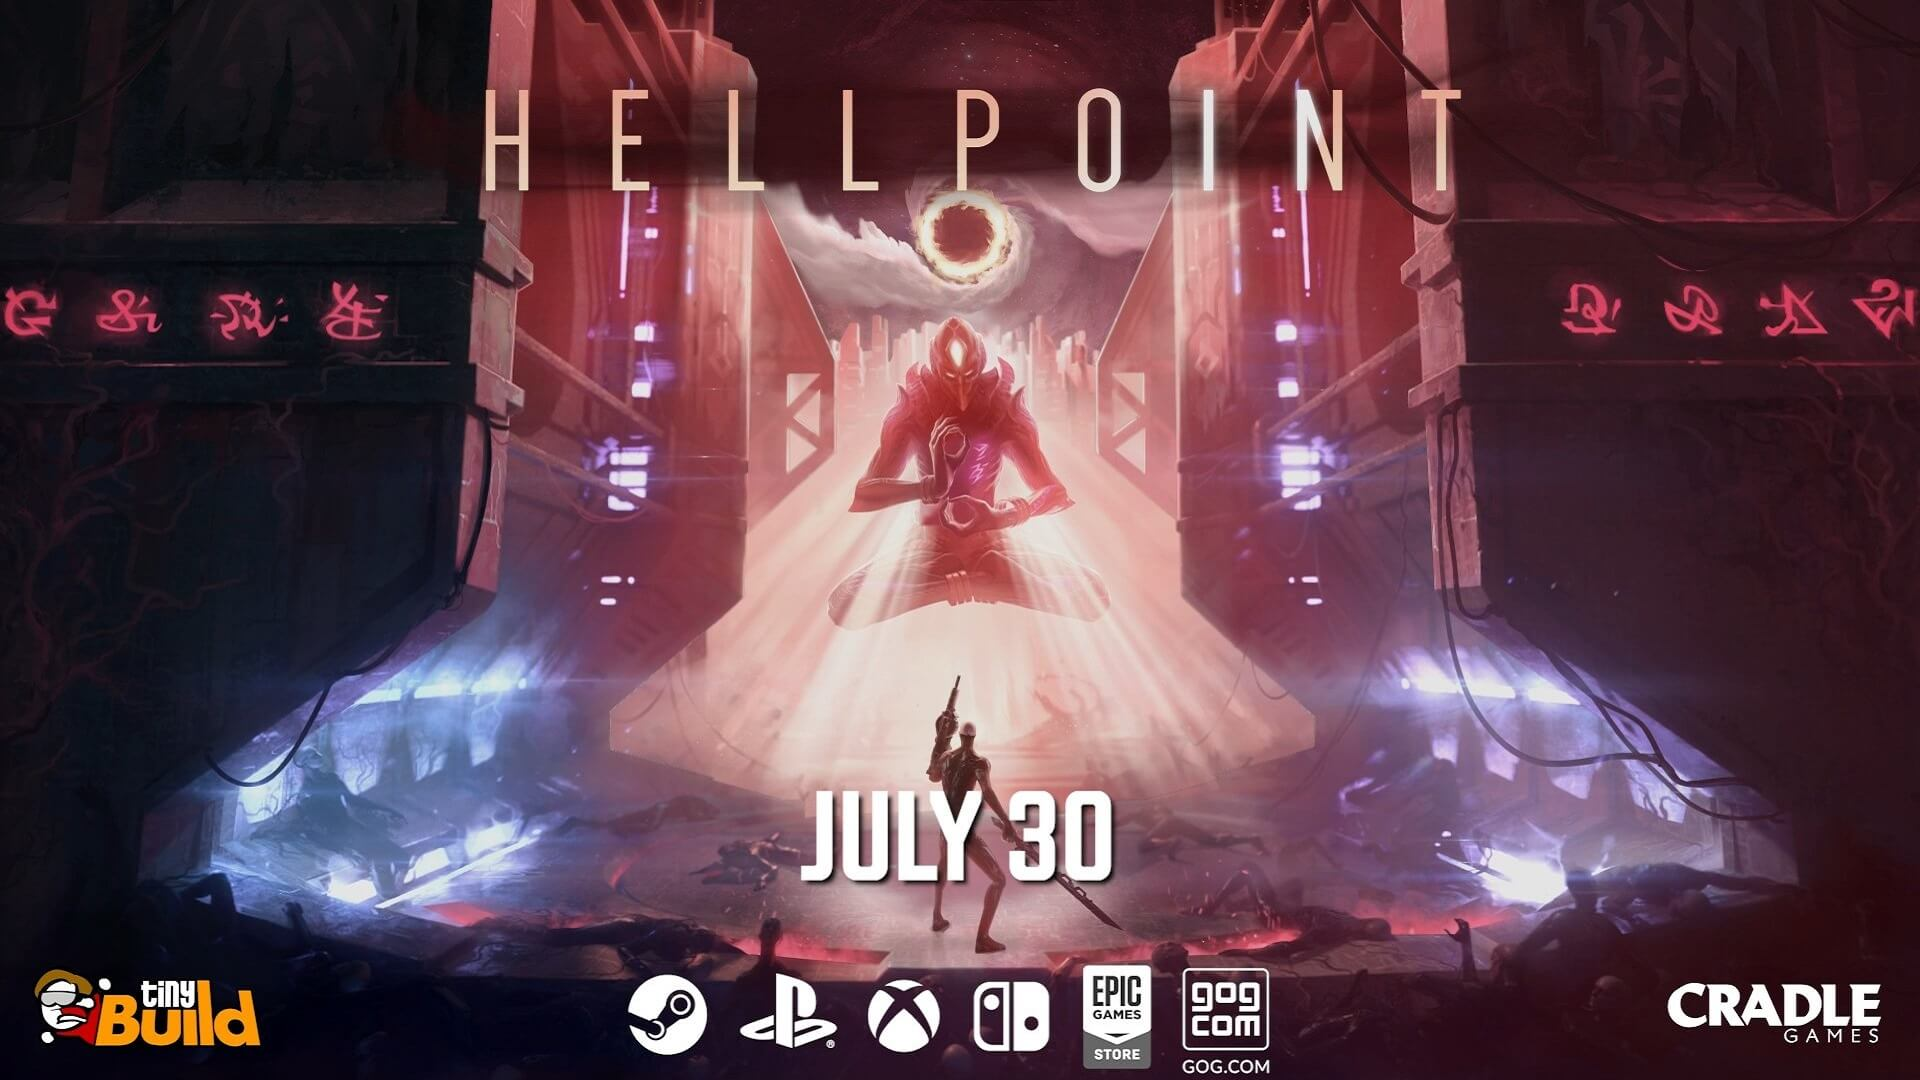 Hellpoint Arrives on PC and Consoles July 30th